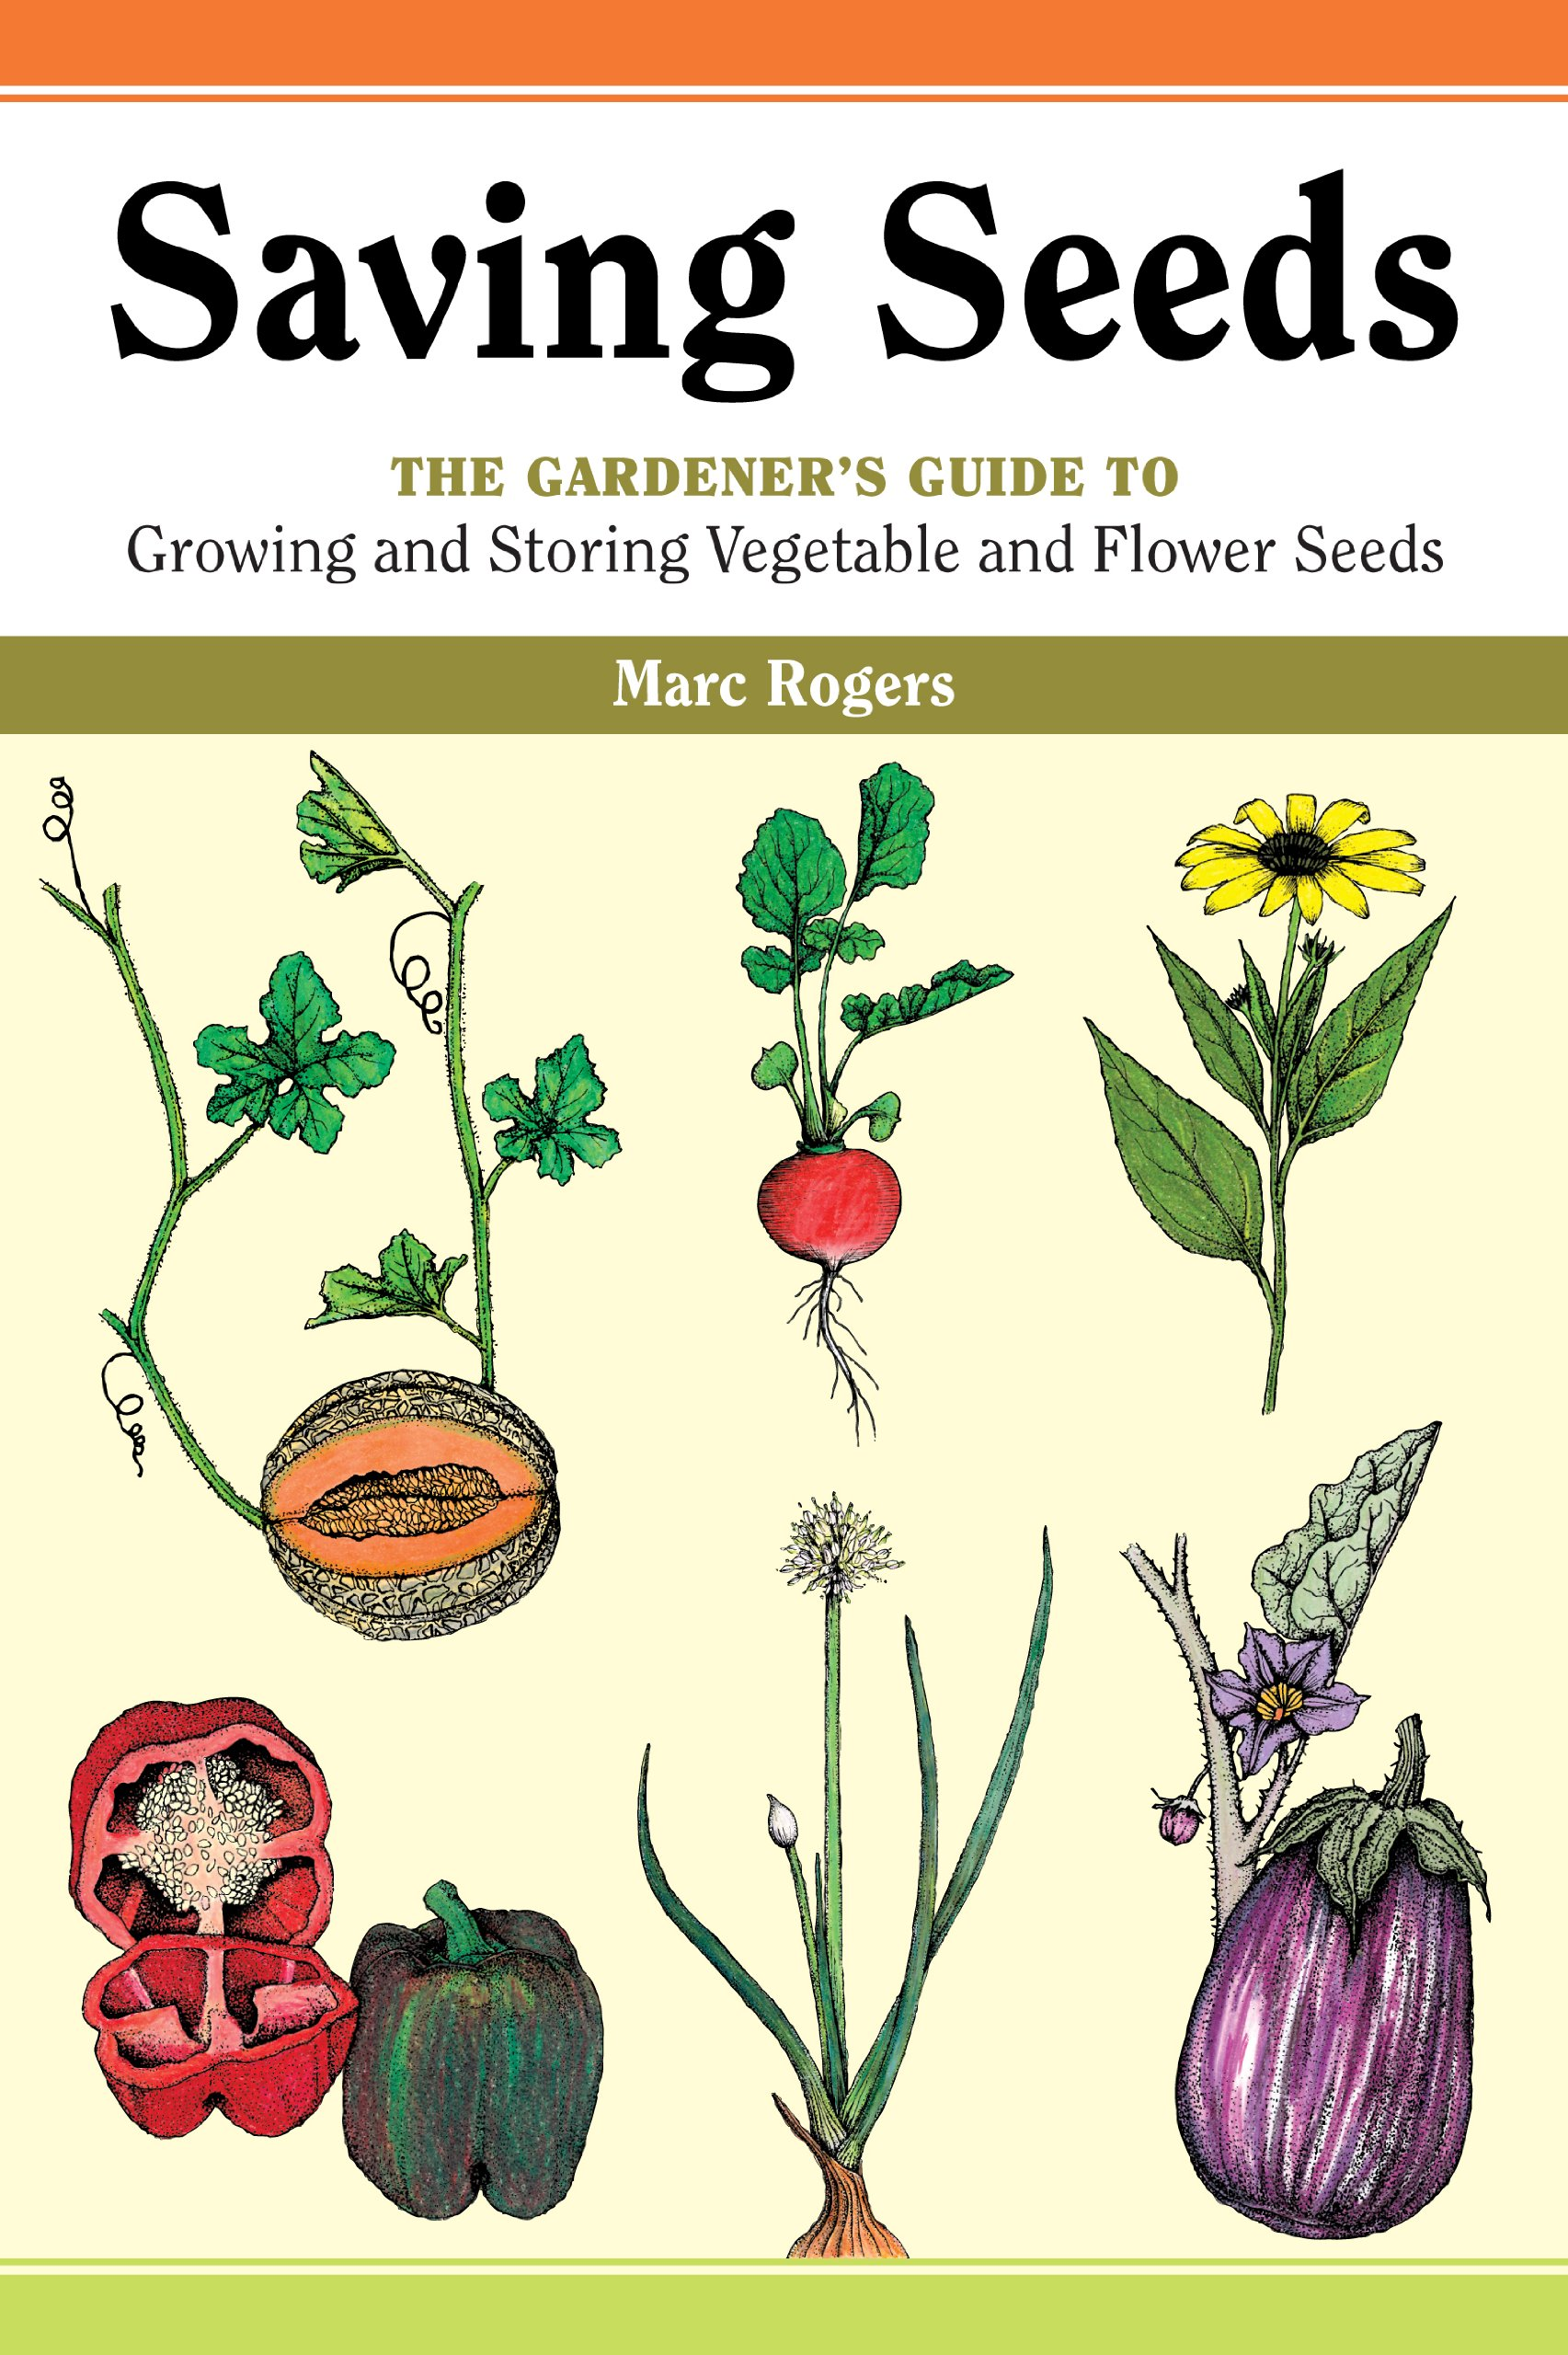 Saving seeds the gardeners guide to growing and storing vegetable saving seeds the gardeners guide to growing and storing vegetable and flower seeds a down to earth gardening book marc rogers polly alexander izmirmasajfo